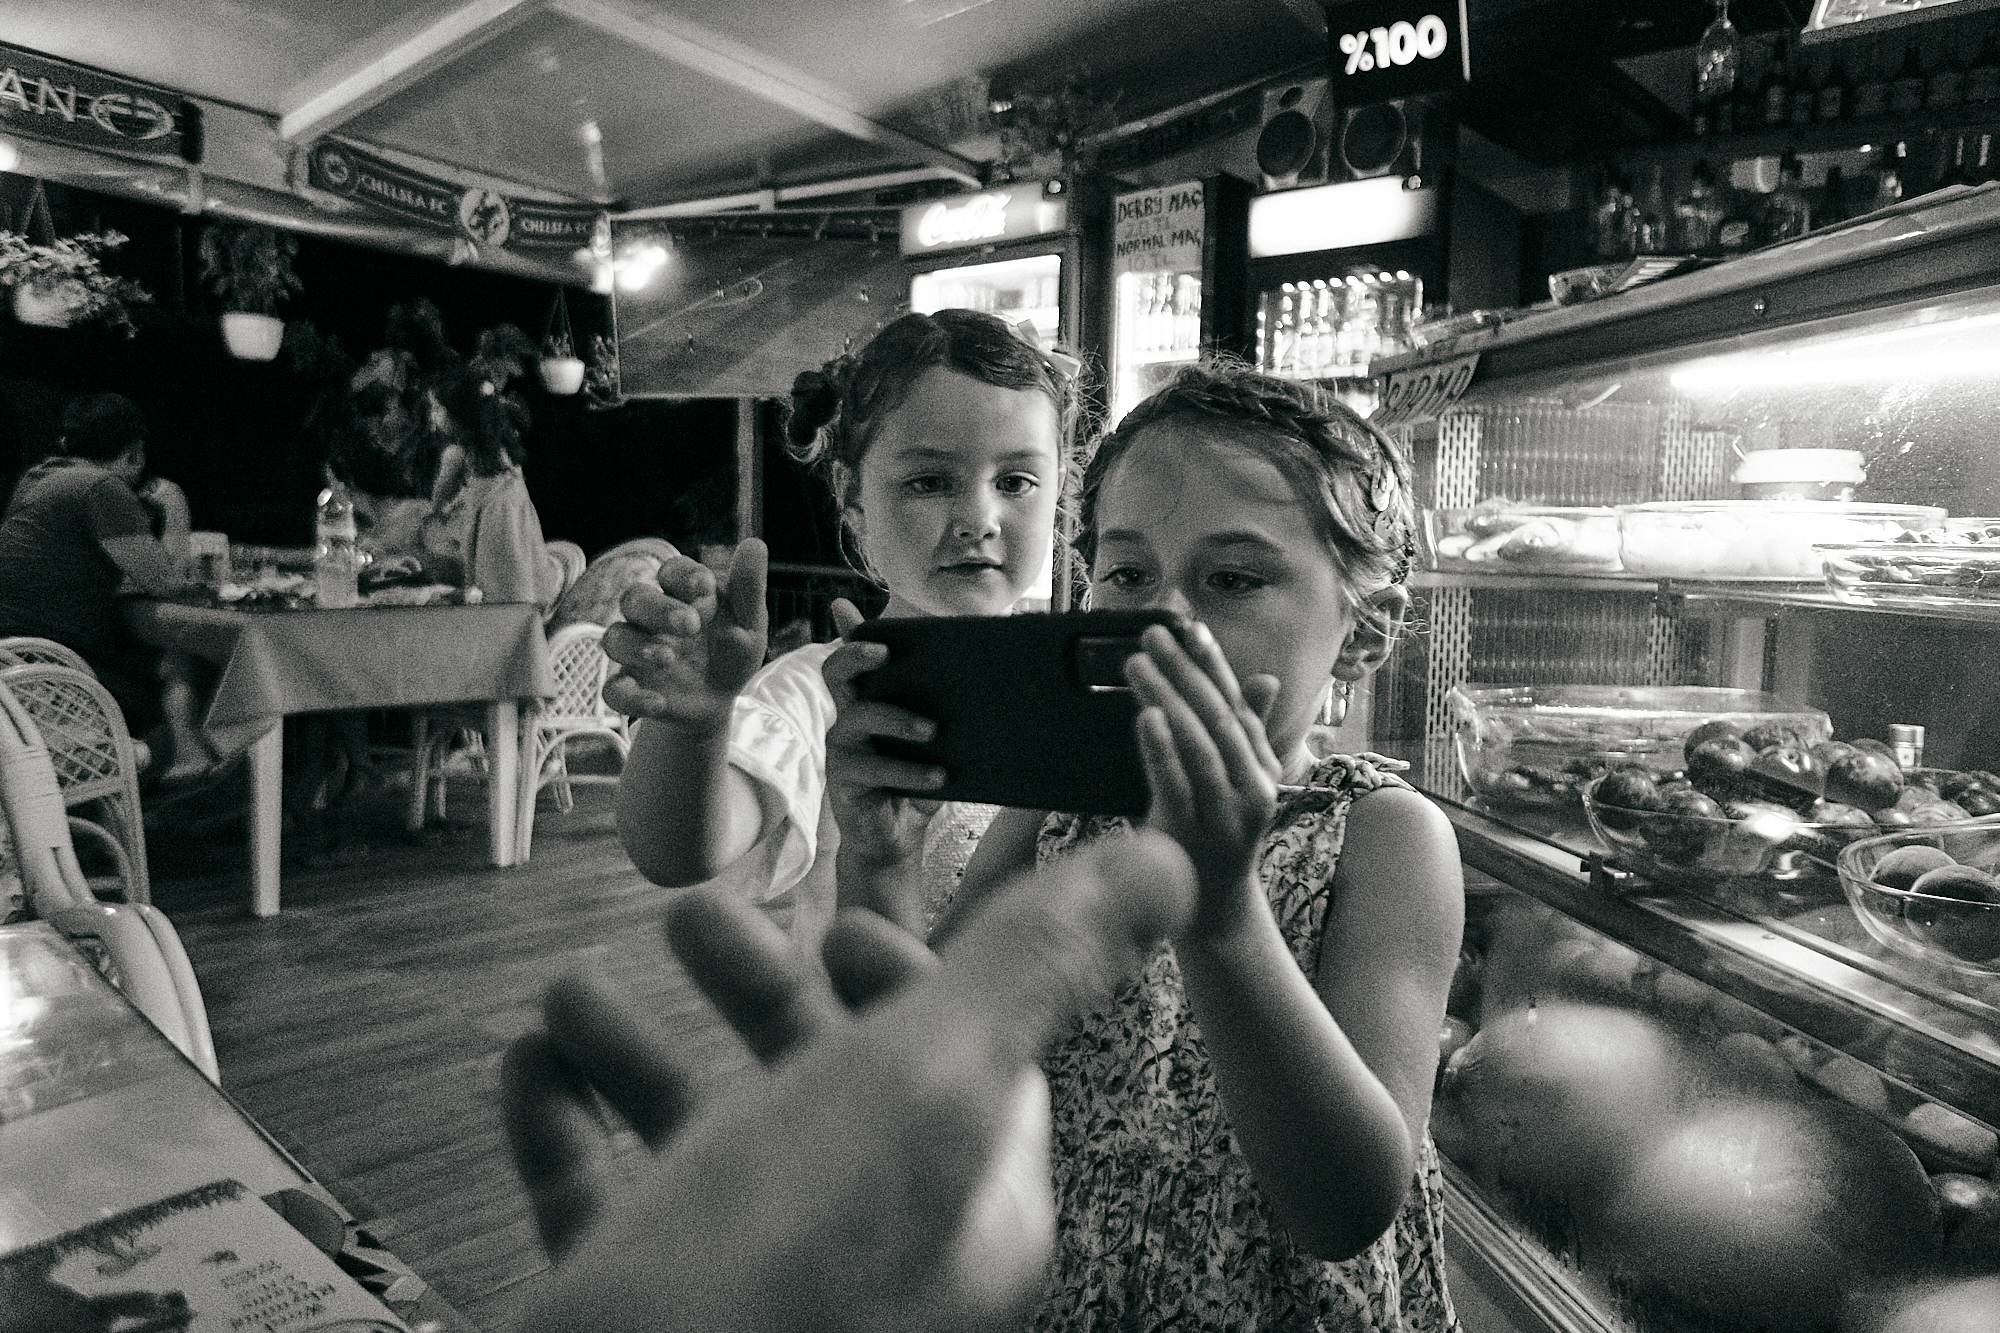 children try to take photo of parents